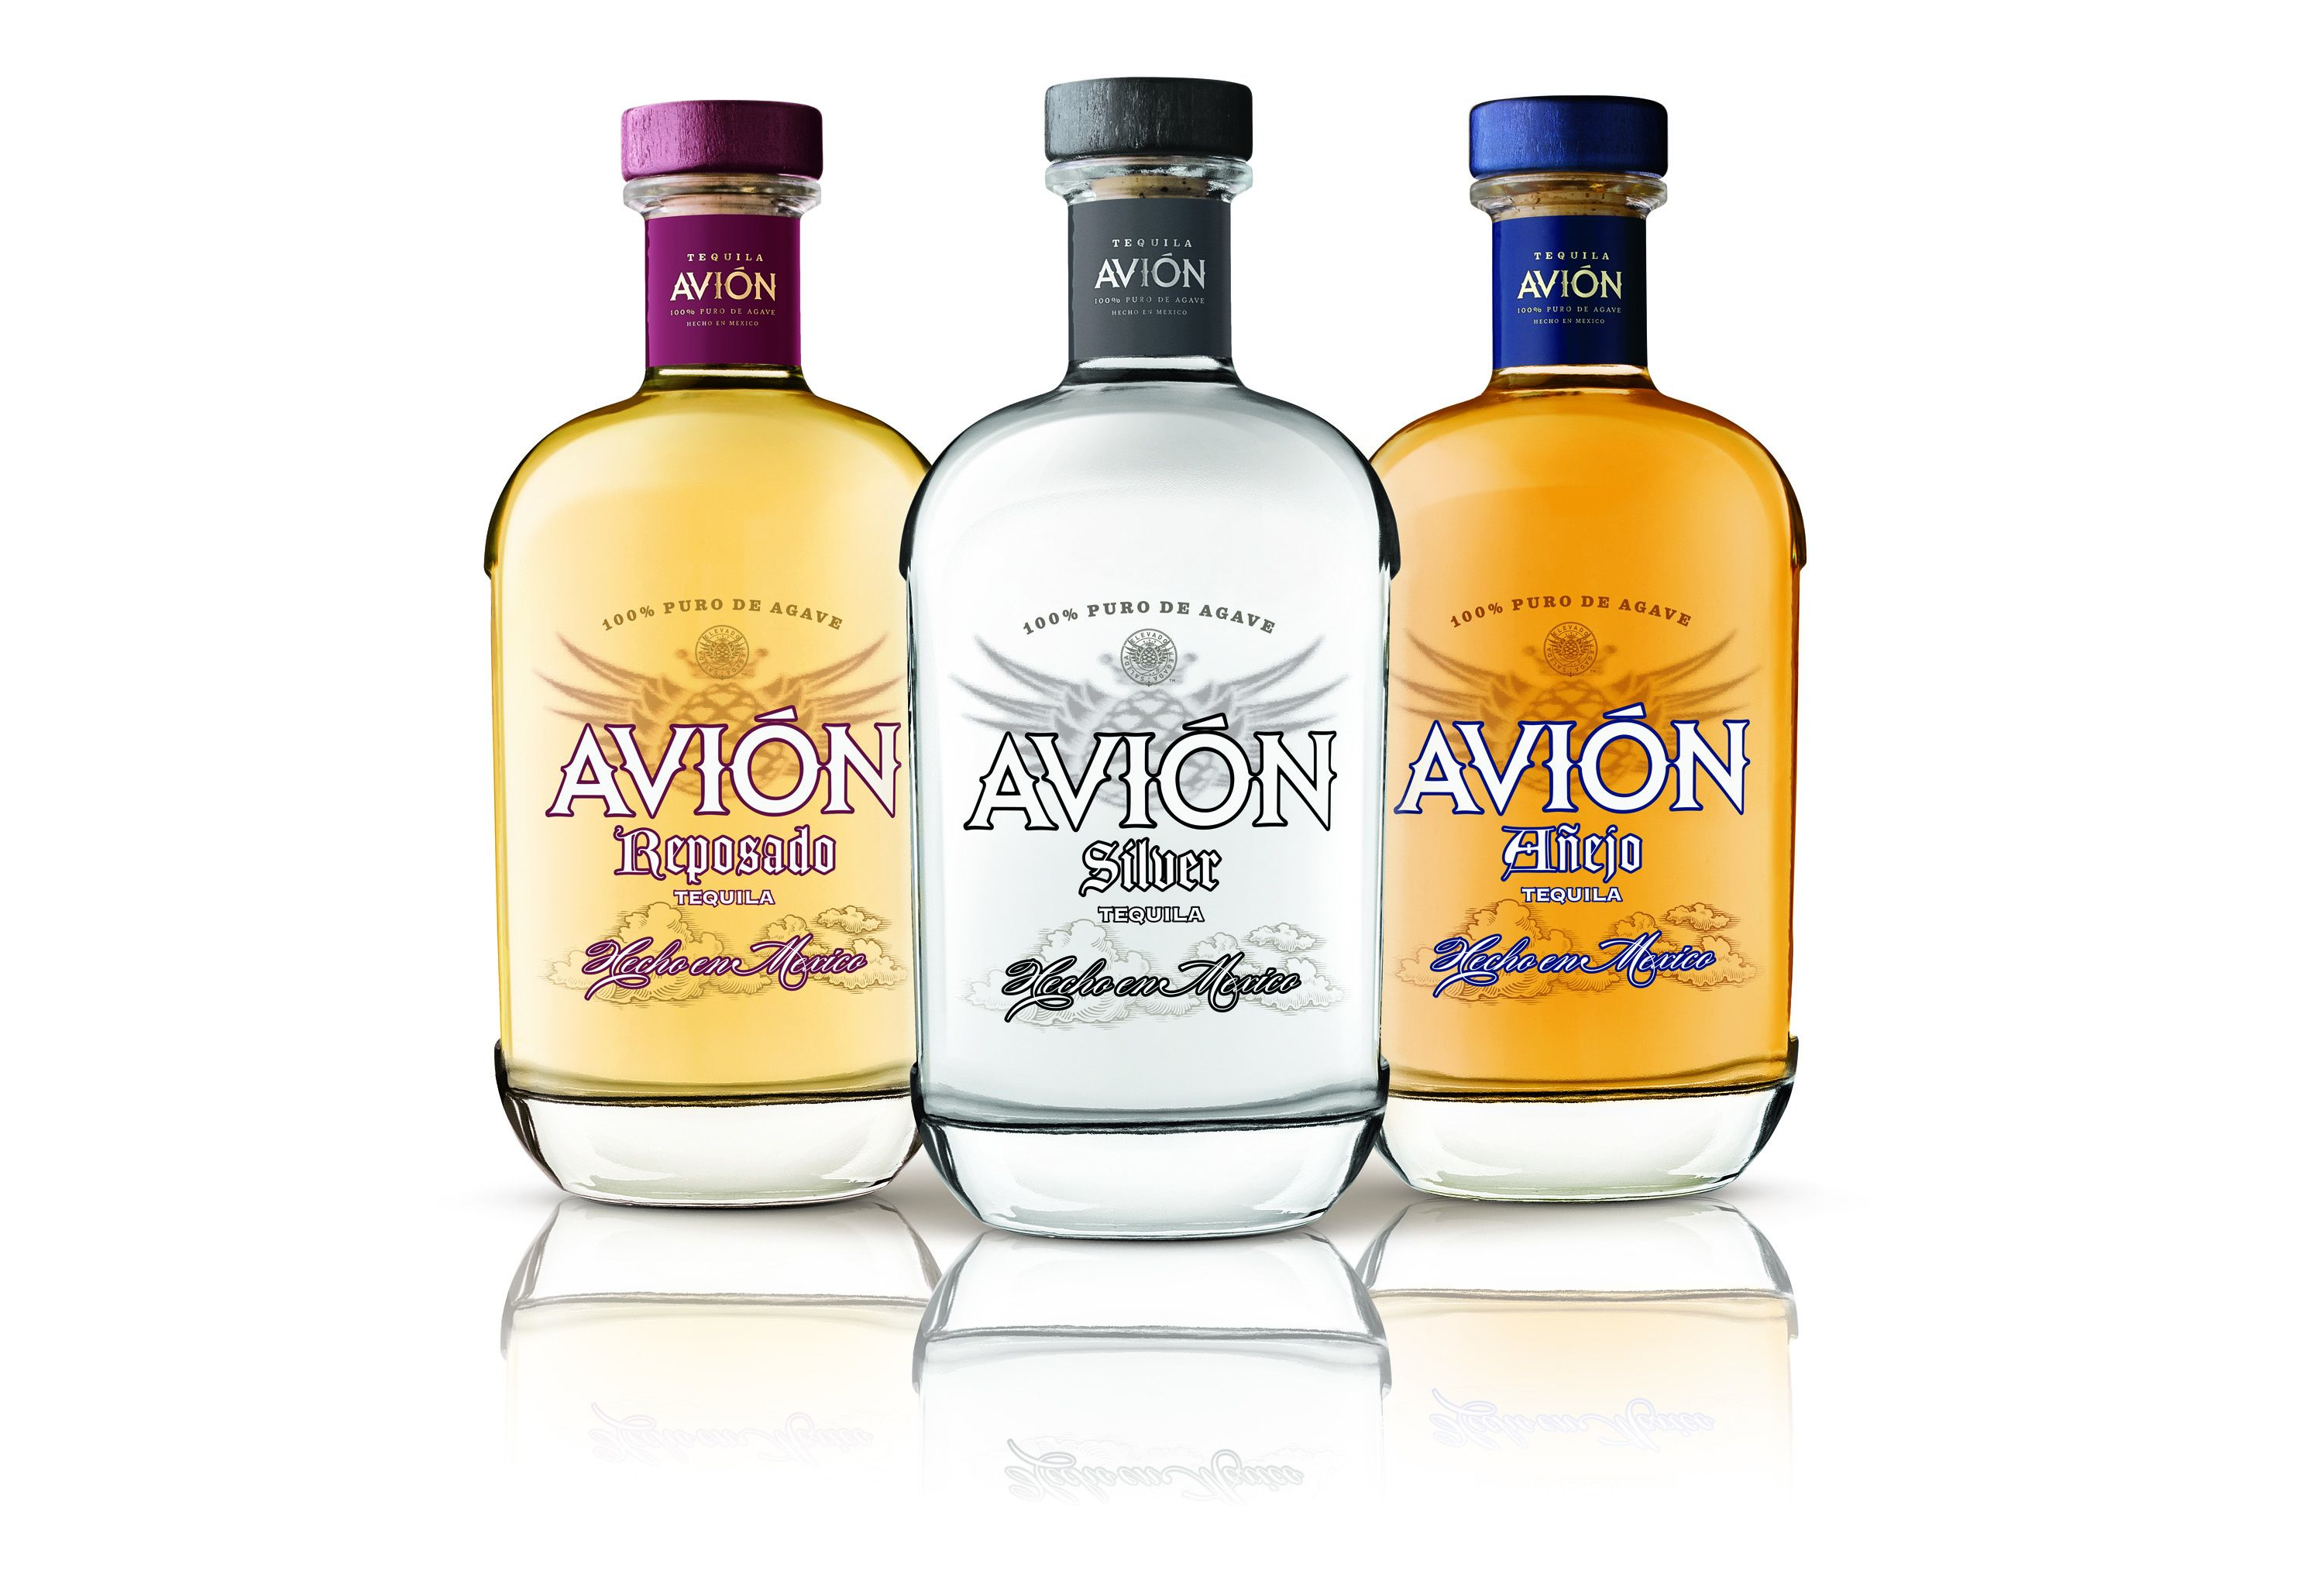 avion tequila alcohol wallpaper 3000x2041 64069